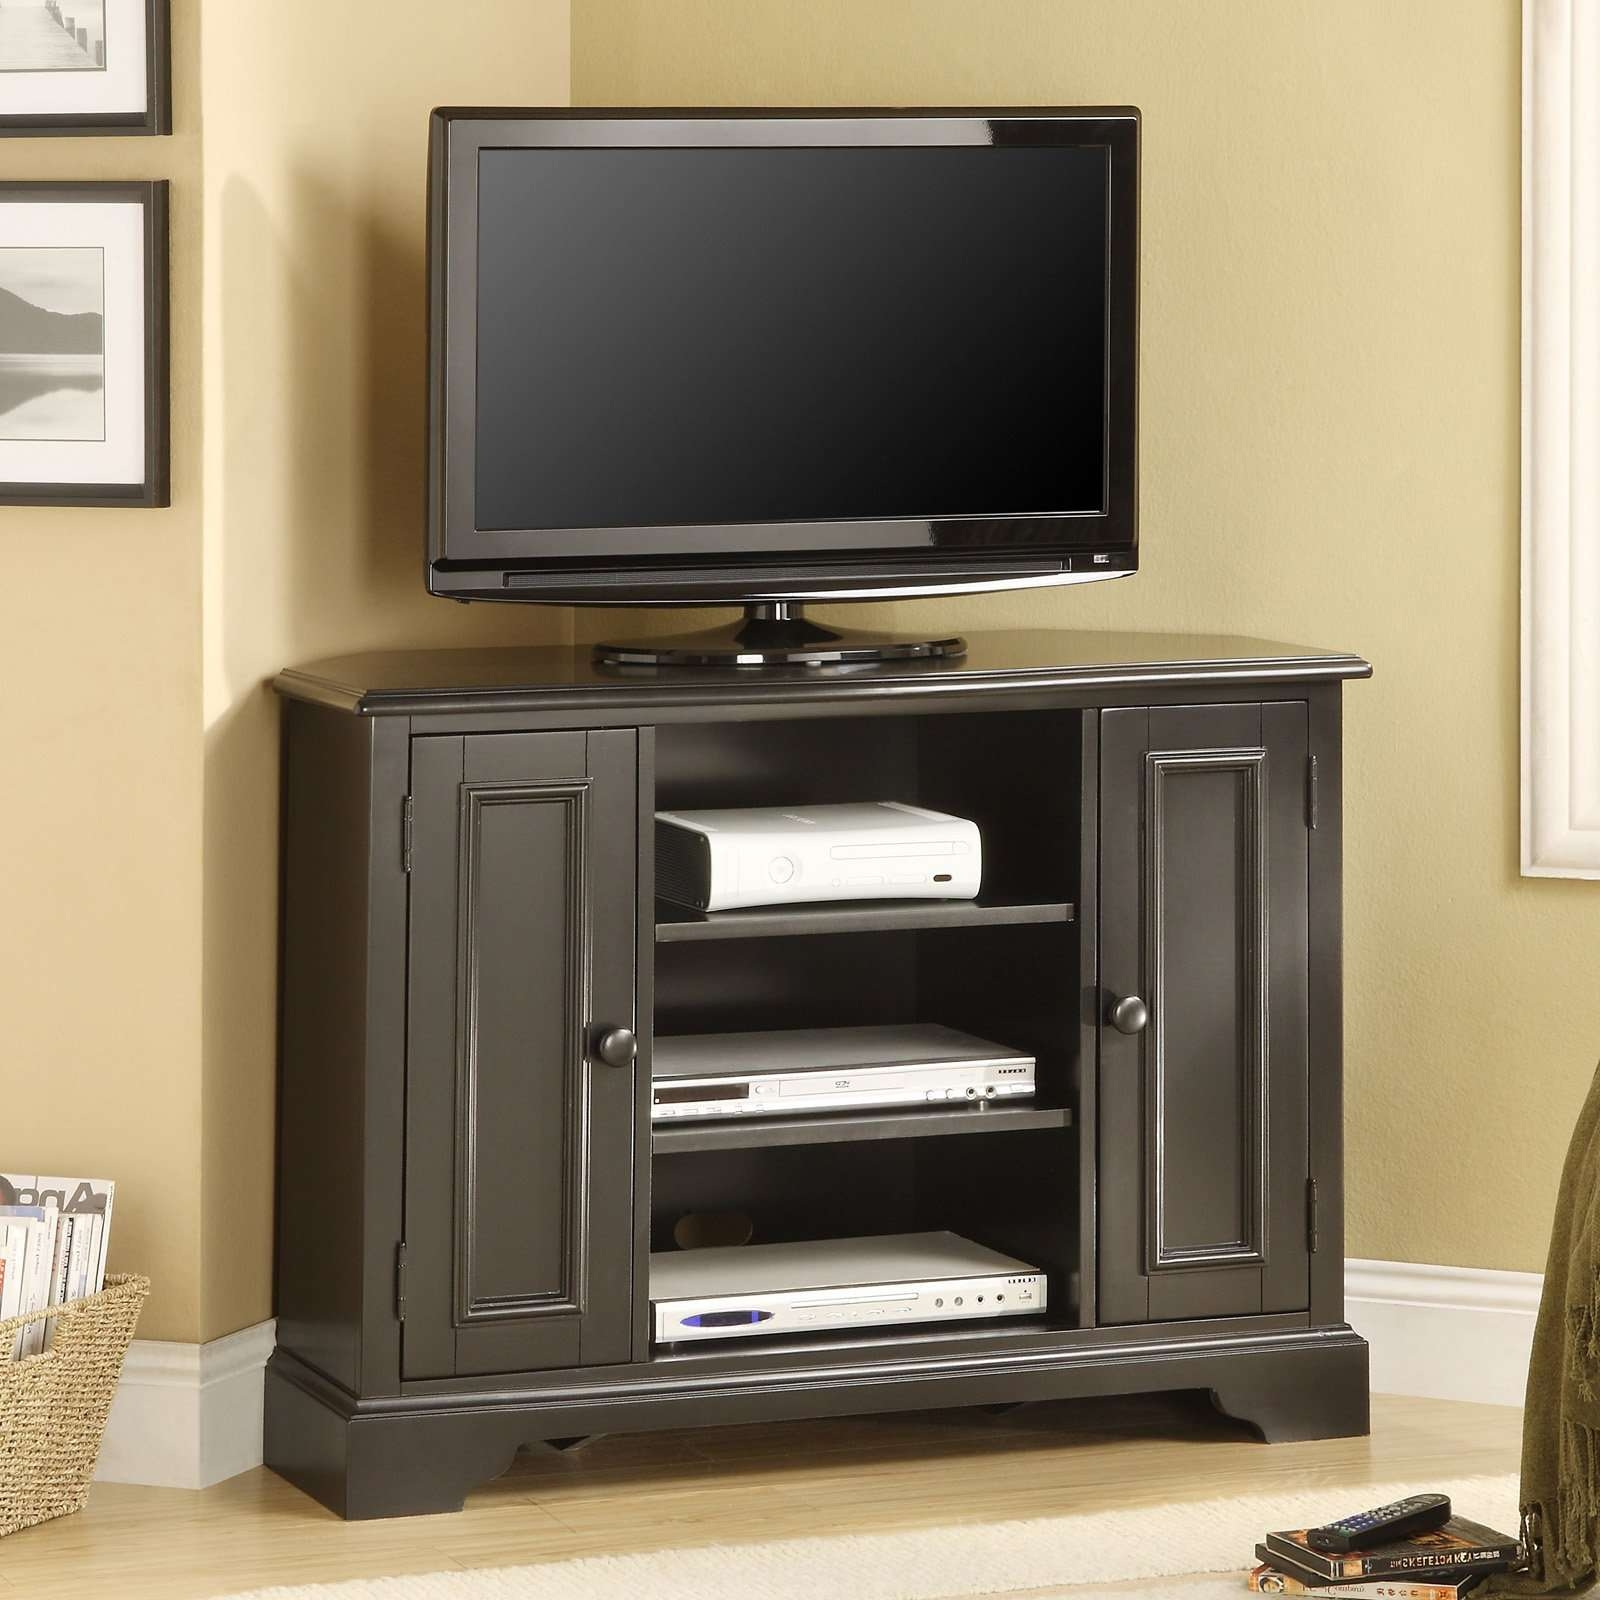 Black Melamine Finished Solid Wood Tall Corner Tv Stand For Regarding Black Wood Corner Tv Stands (View 4 of 15)